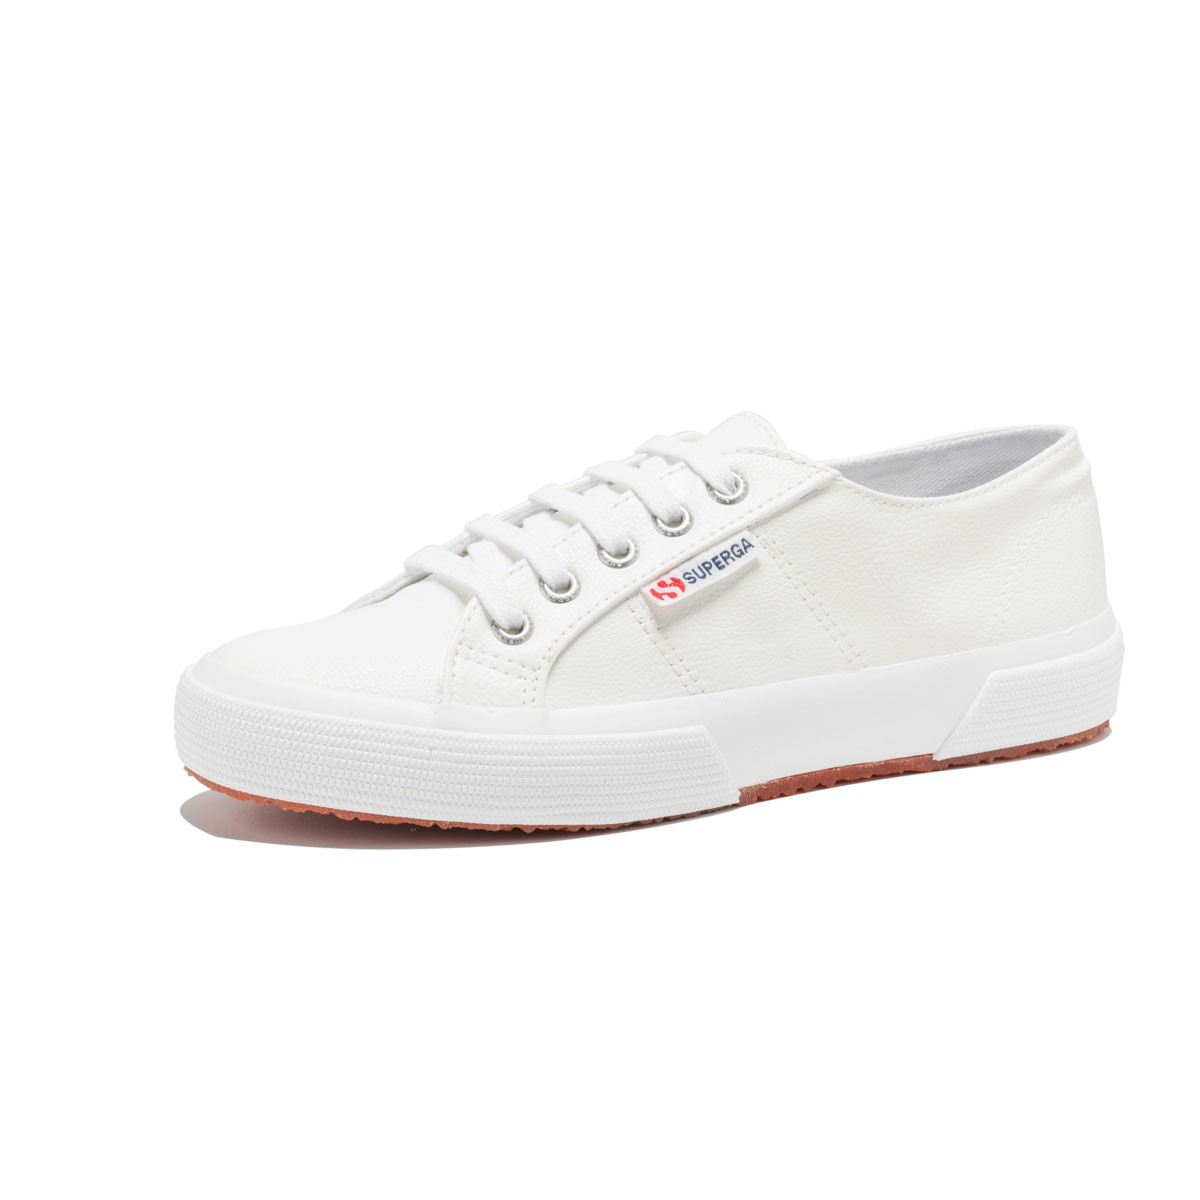 c8cedeefe7 2750 FGLU SUM WHITE - Superga